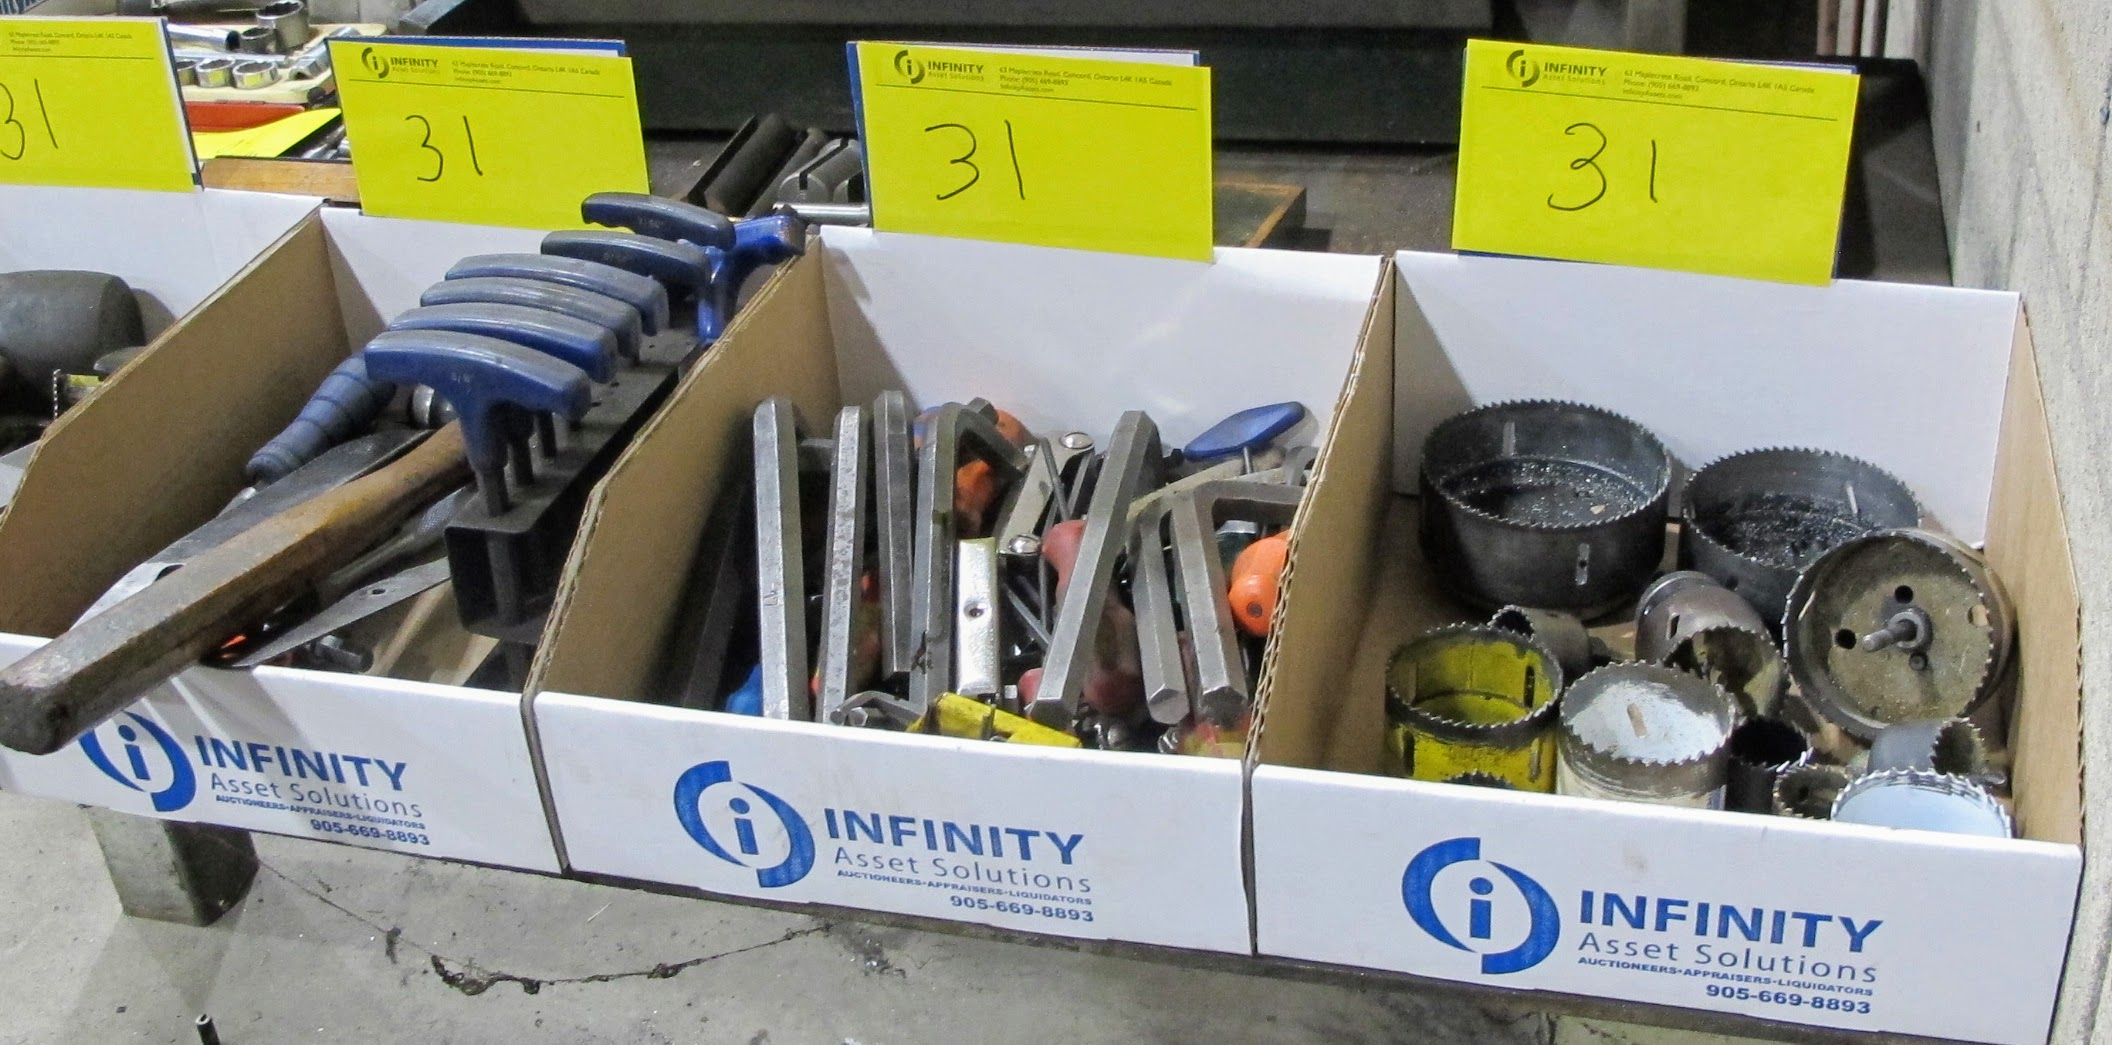 LOT OF 9 BOXES OF HAND TOOLS - Image 3 of 3